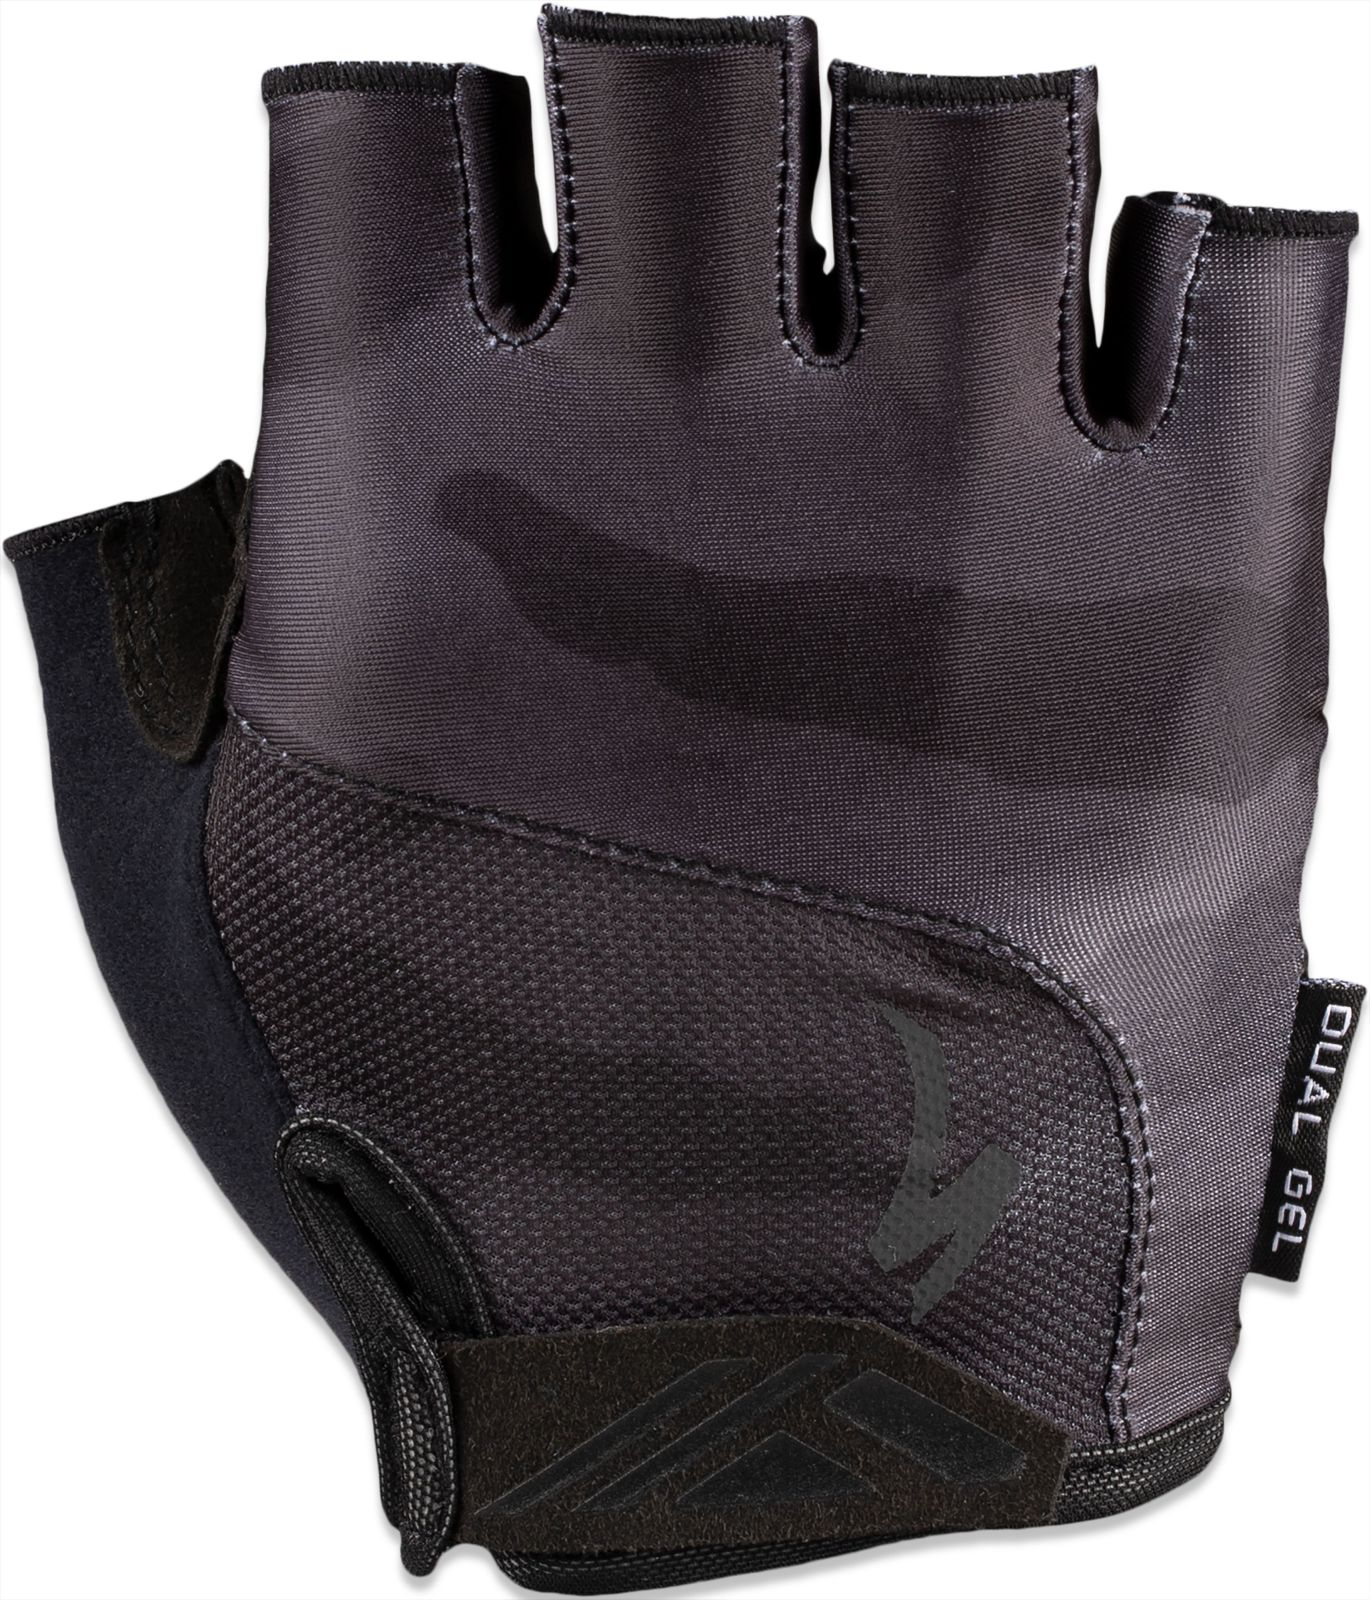 Specialized BG Dual Gel Glove SF - black/charcoal camo XXL